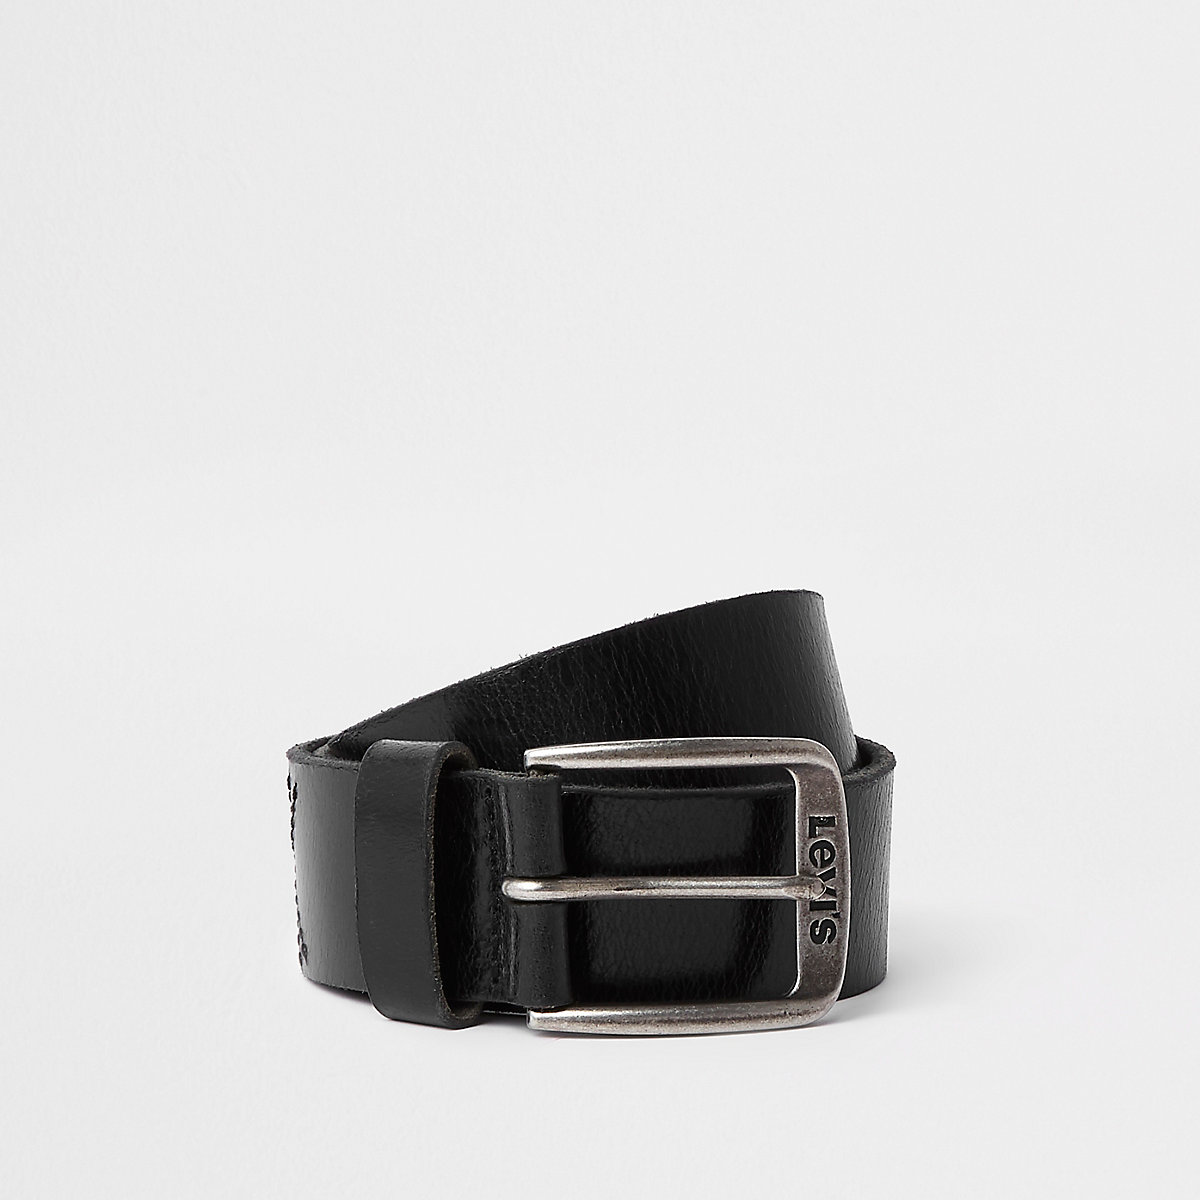 Levi's black leather buckle belt